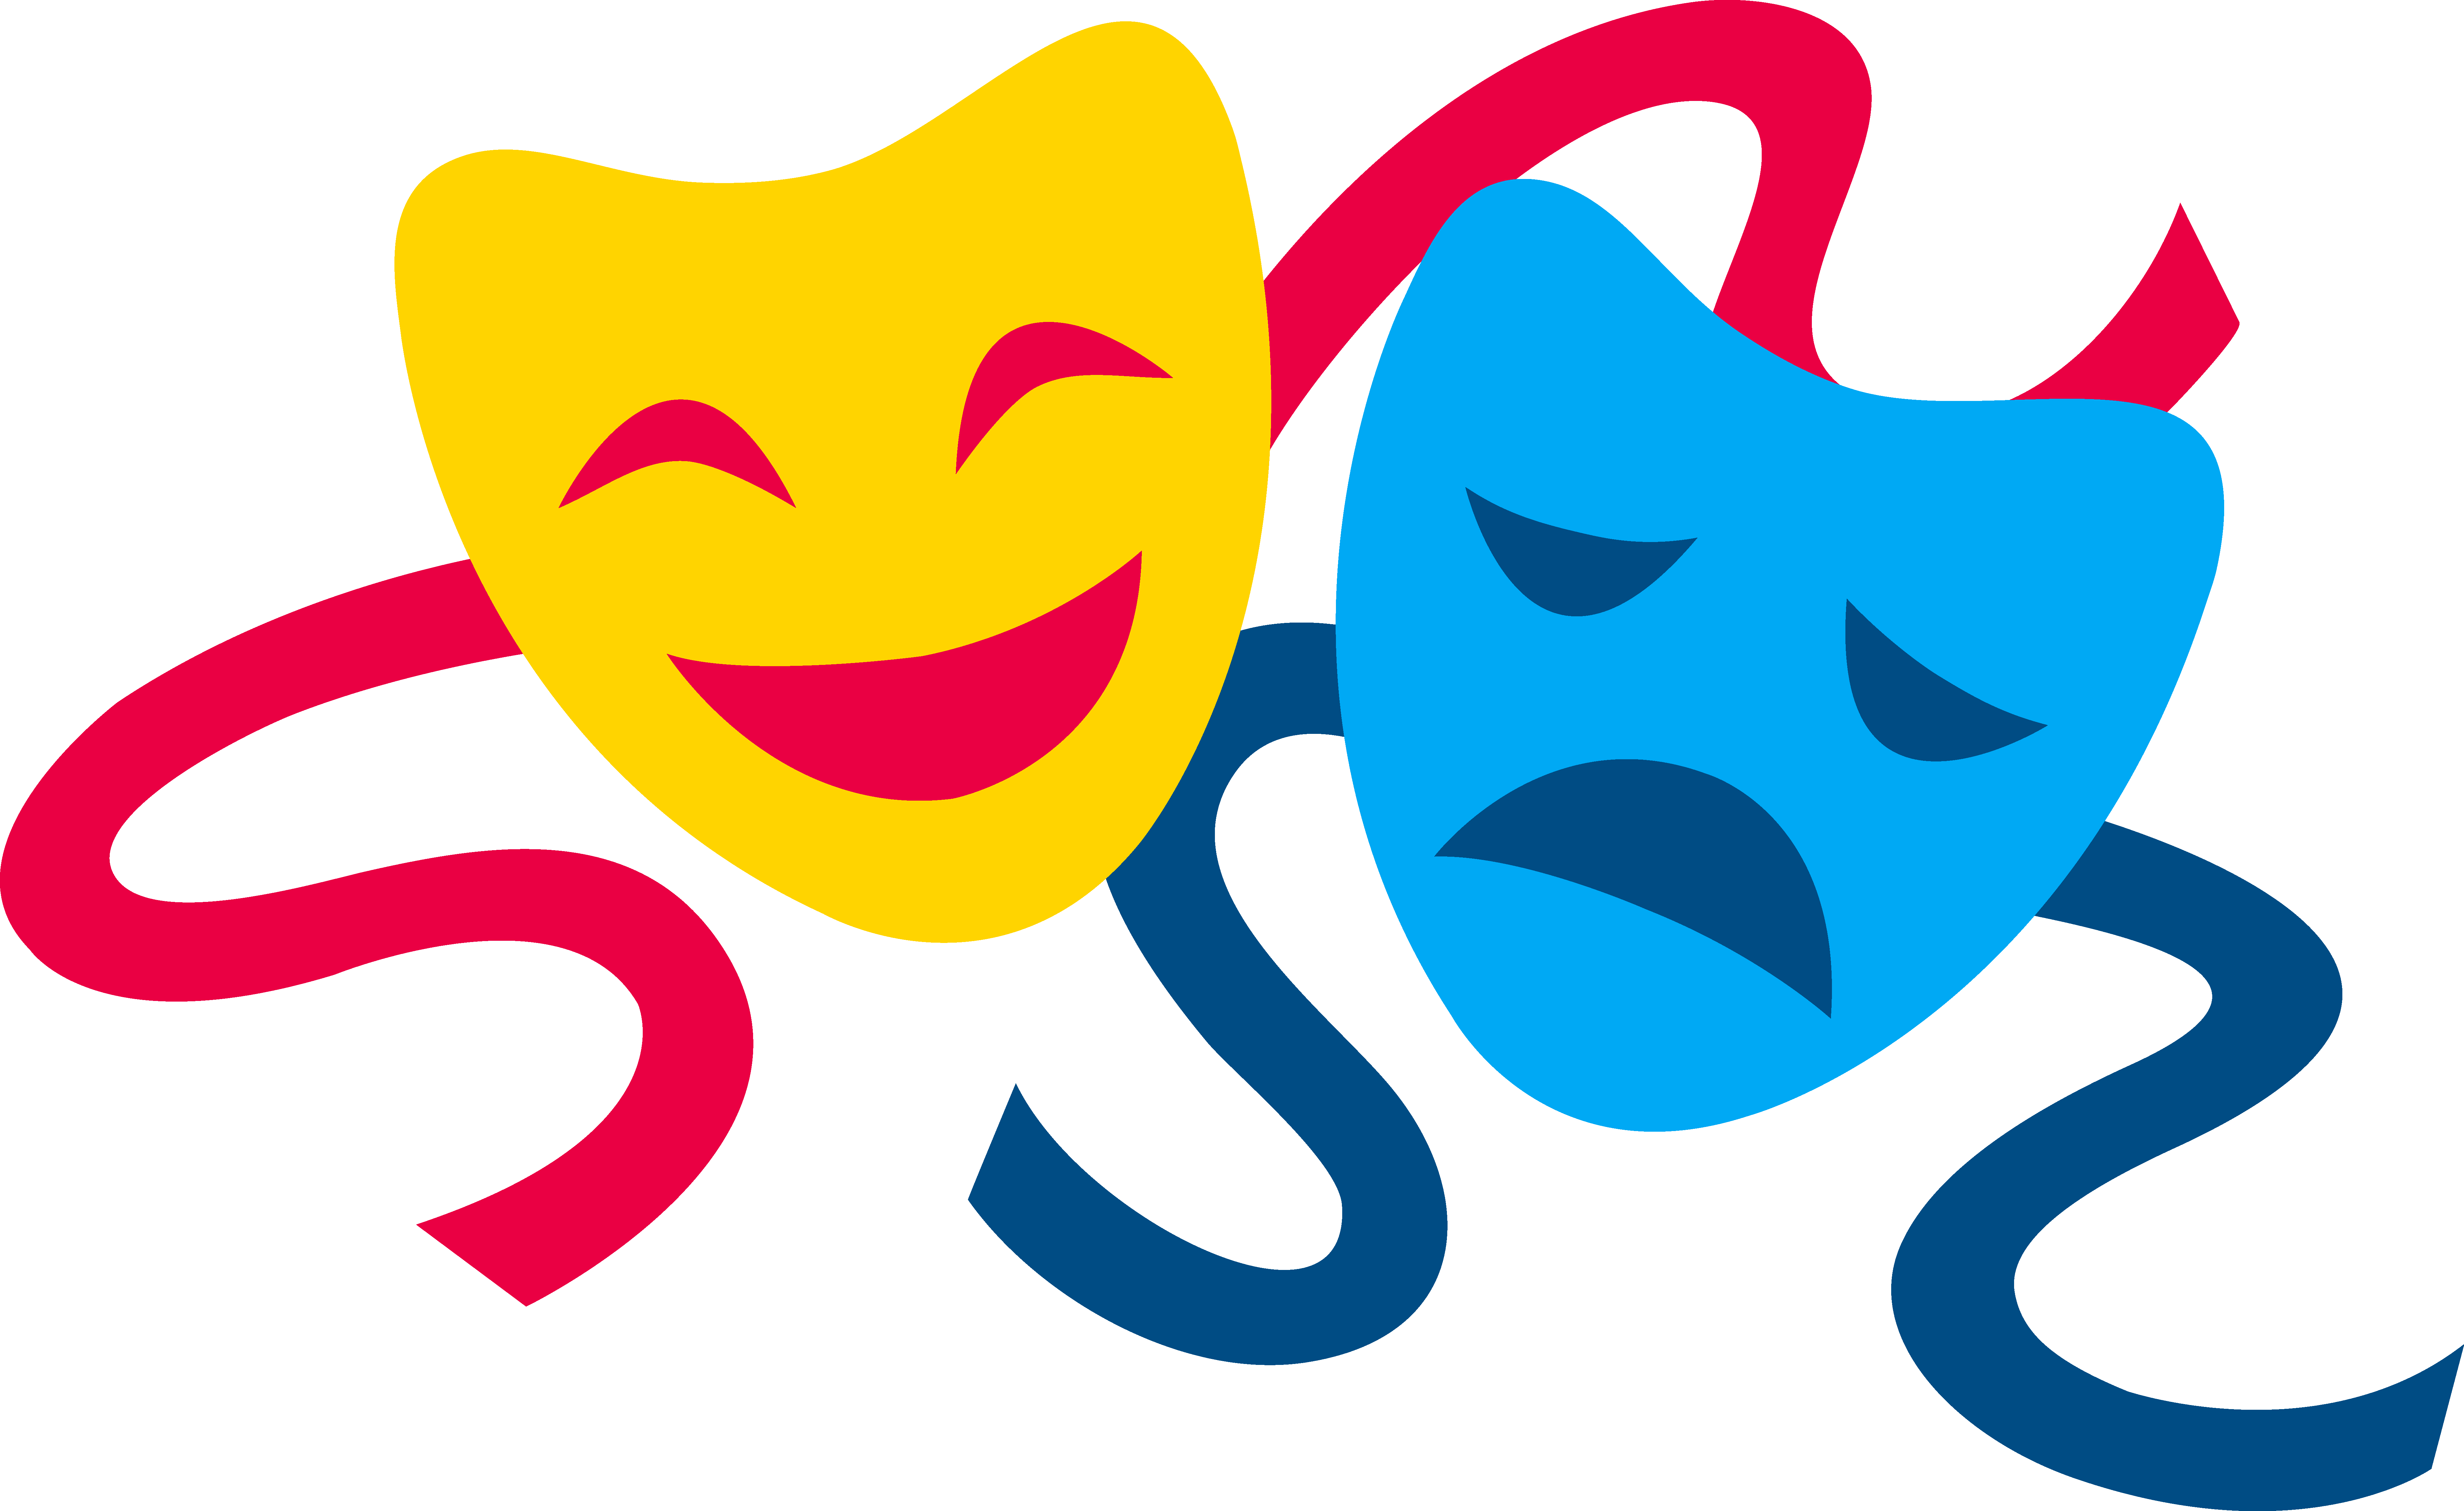 Drama Mask Png - Free Theater Masks, Download Free Clip Art, Free Clip Art on ...